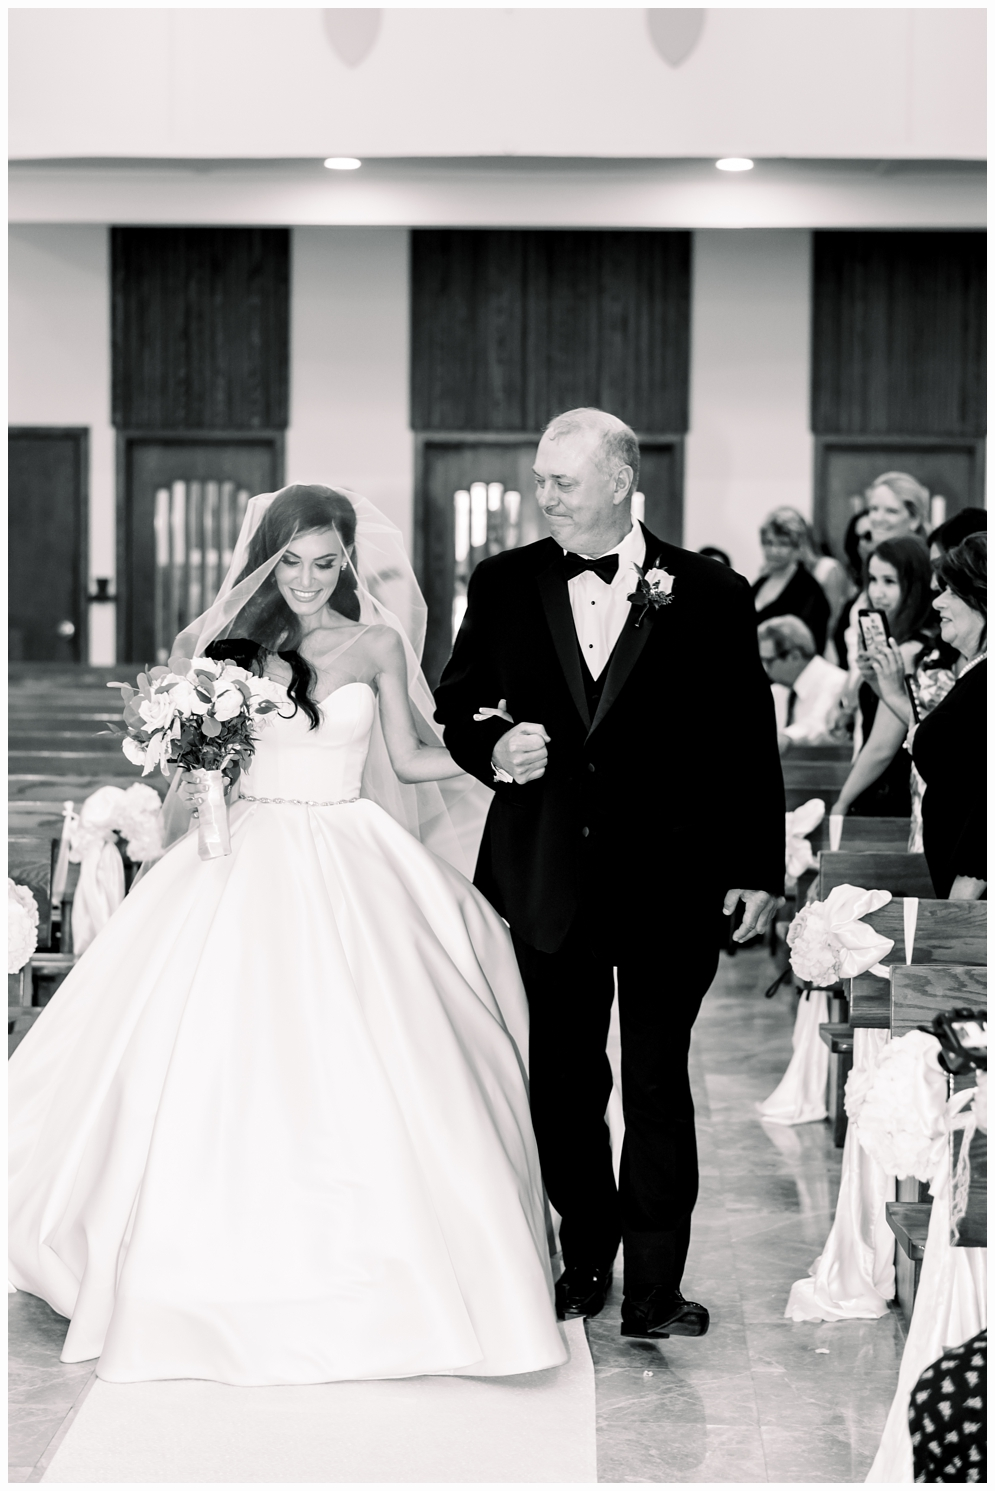 dad escorting bride down the aisle in church